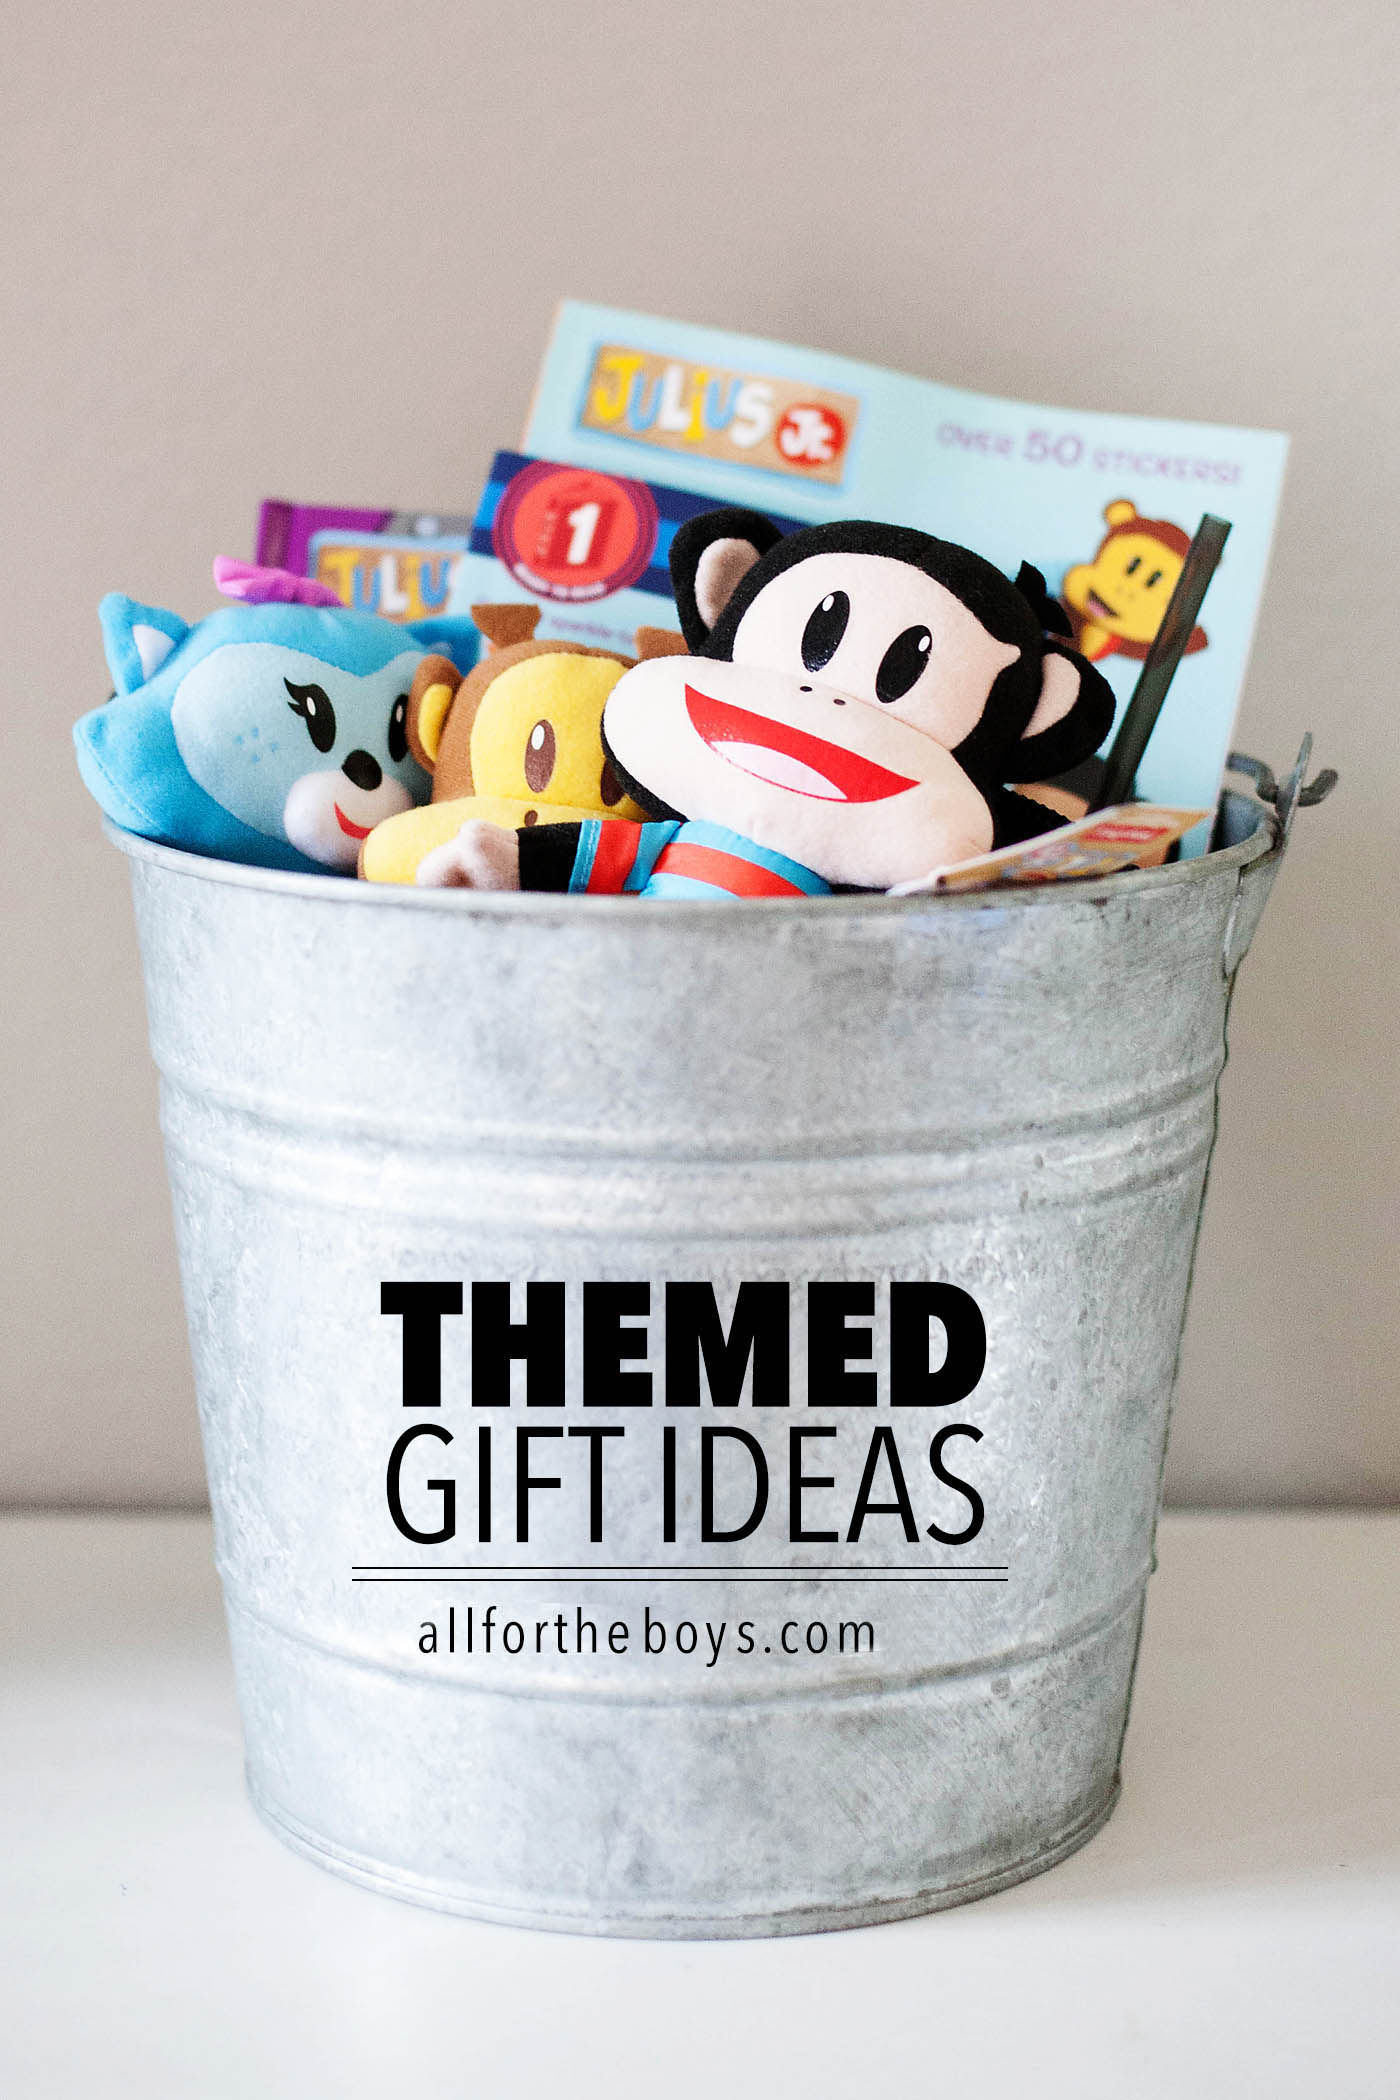 Themed gift ideas